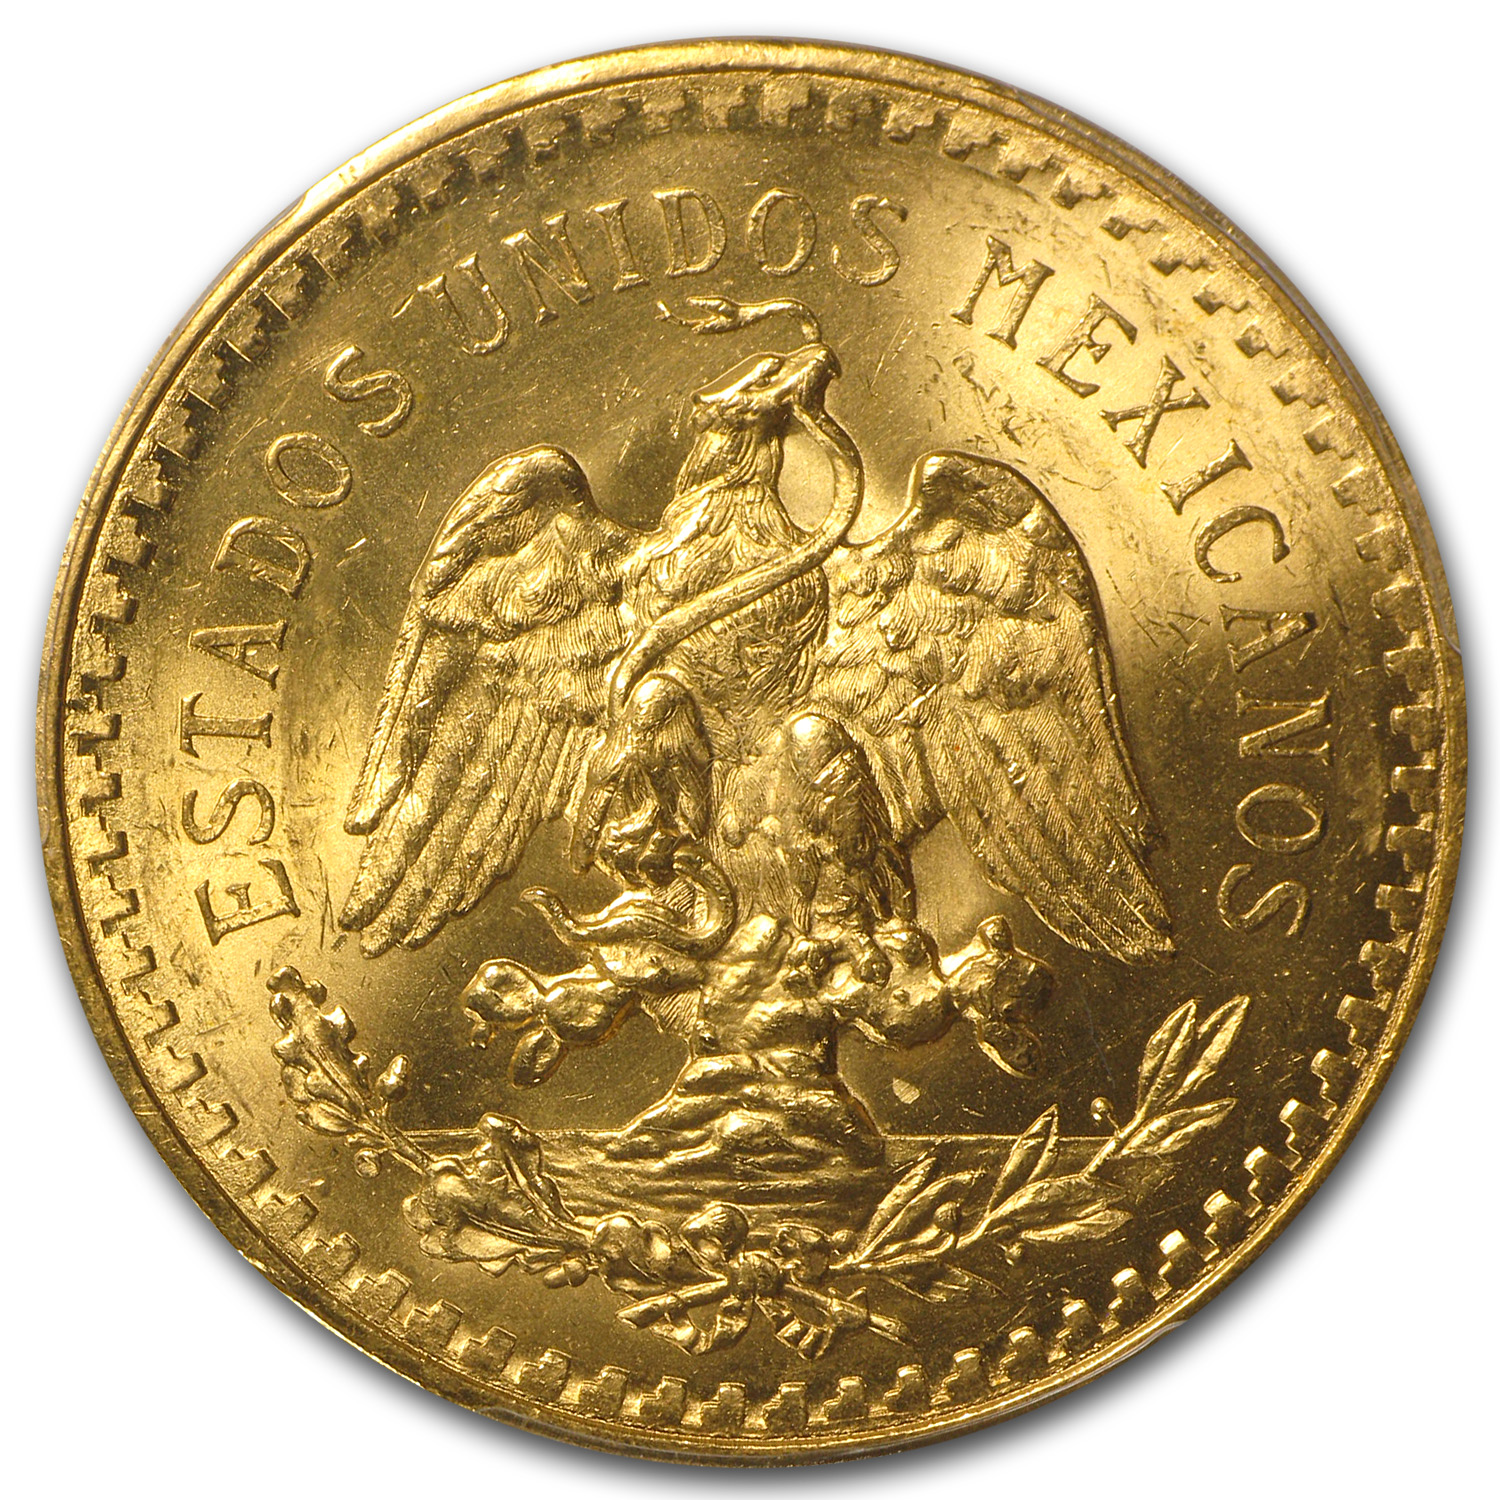 1930 Mexico Gold 50 Pesos MS-65 PCGS